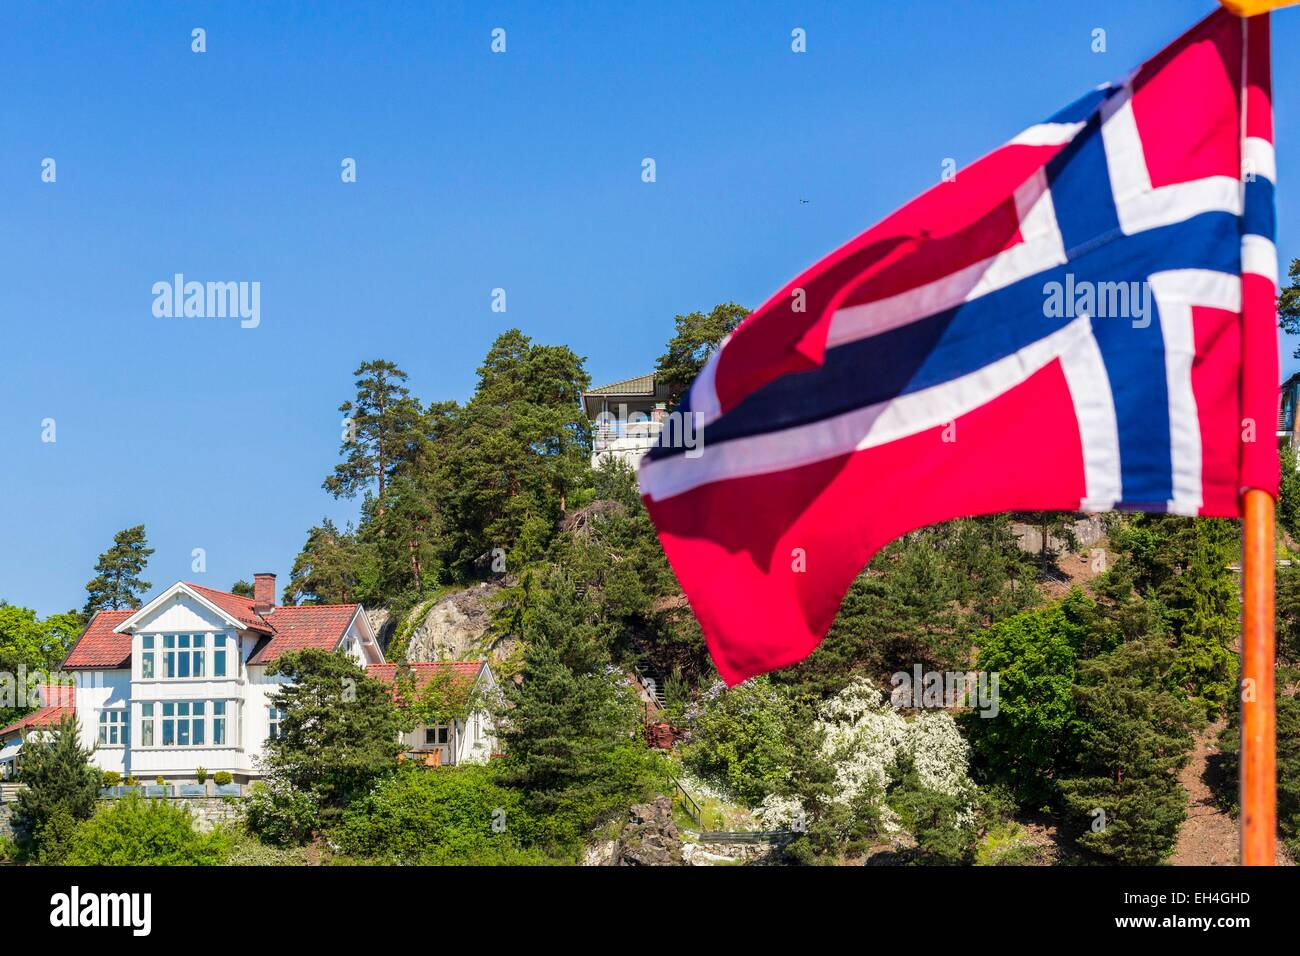 Norway, Oslo, Oslofjord, dwelling on one of the many islands Fjord with the Norwegian flag in the foreground - Stock Image